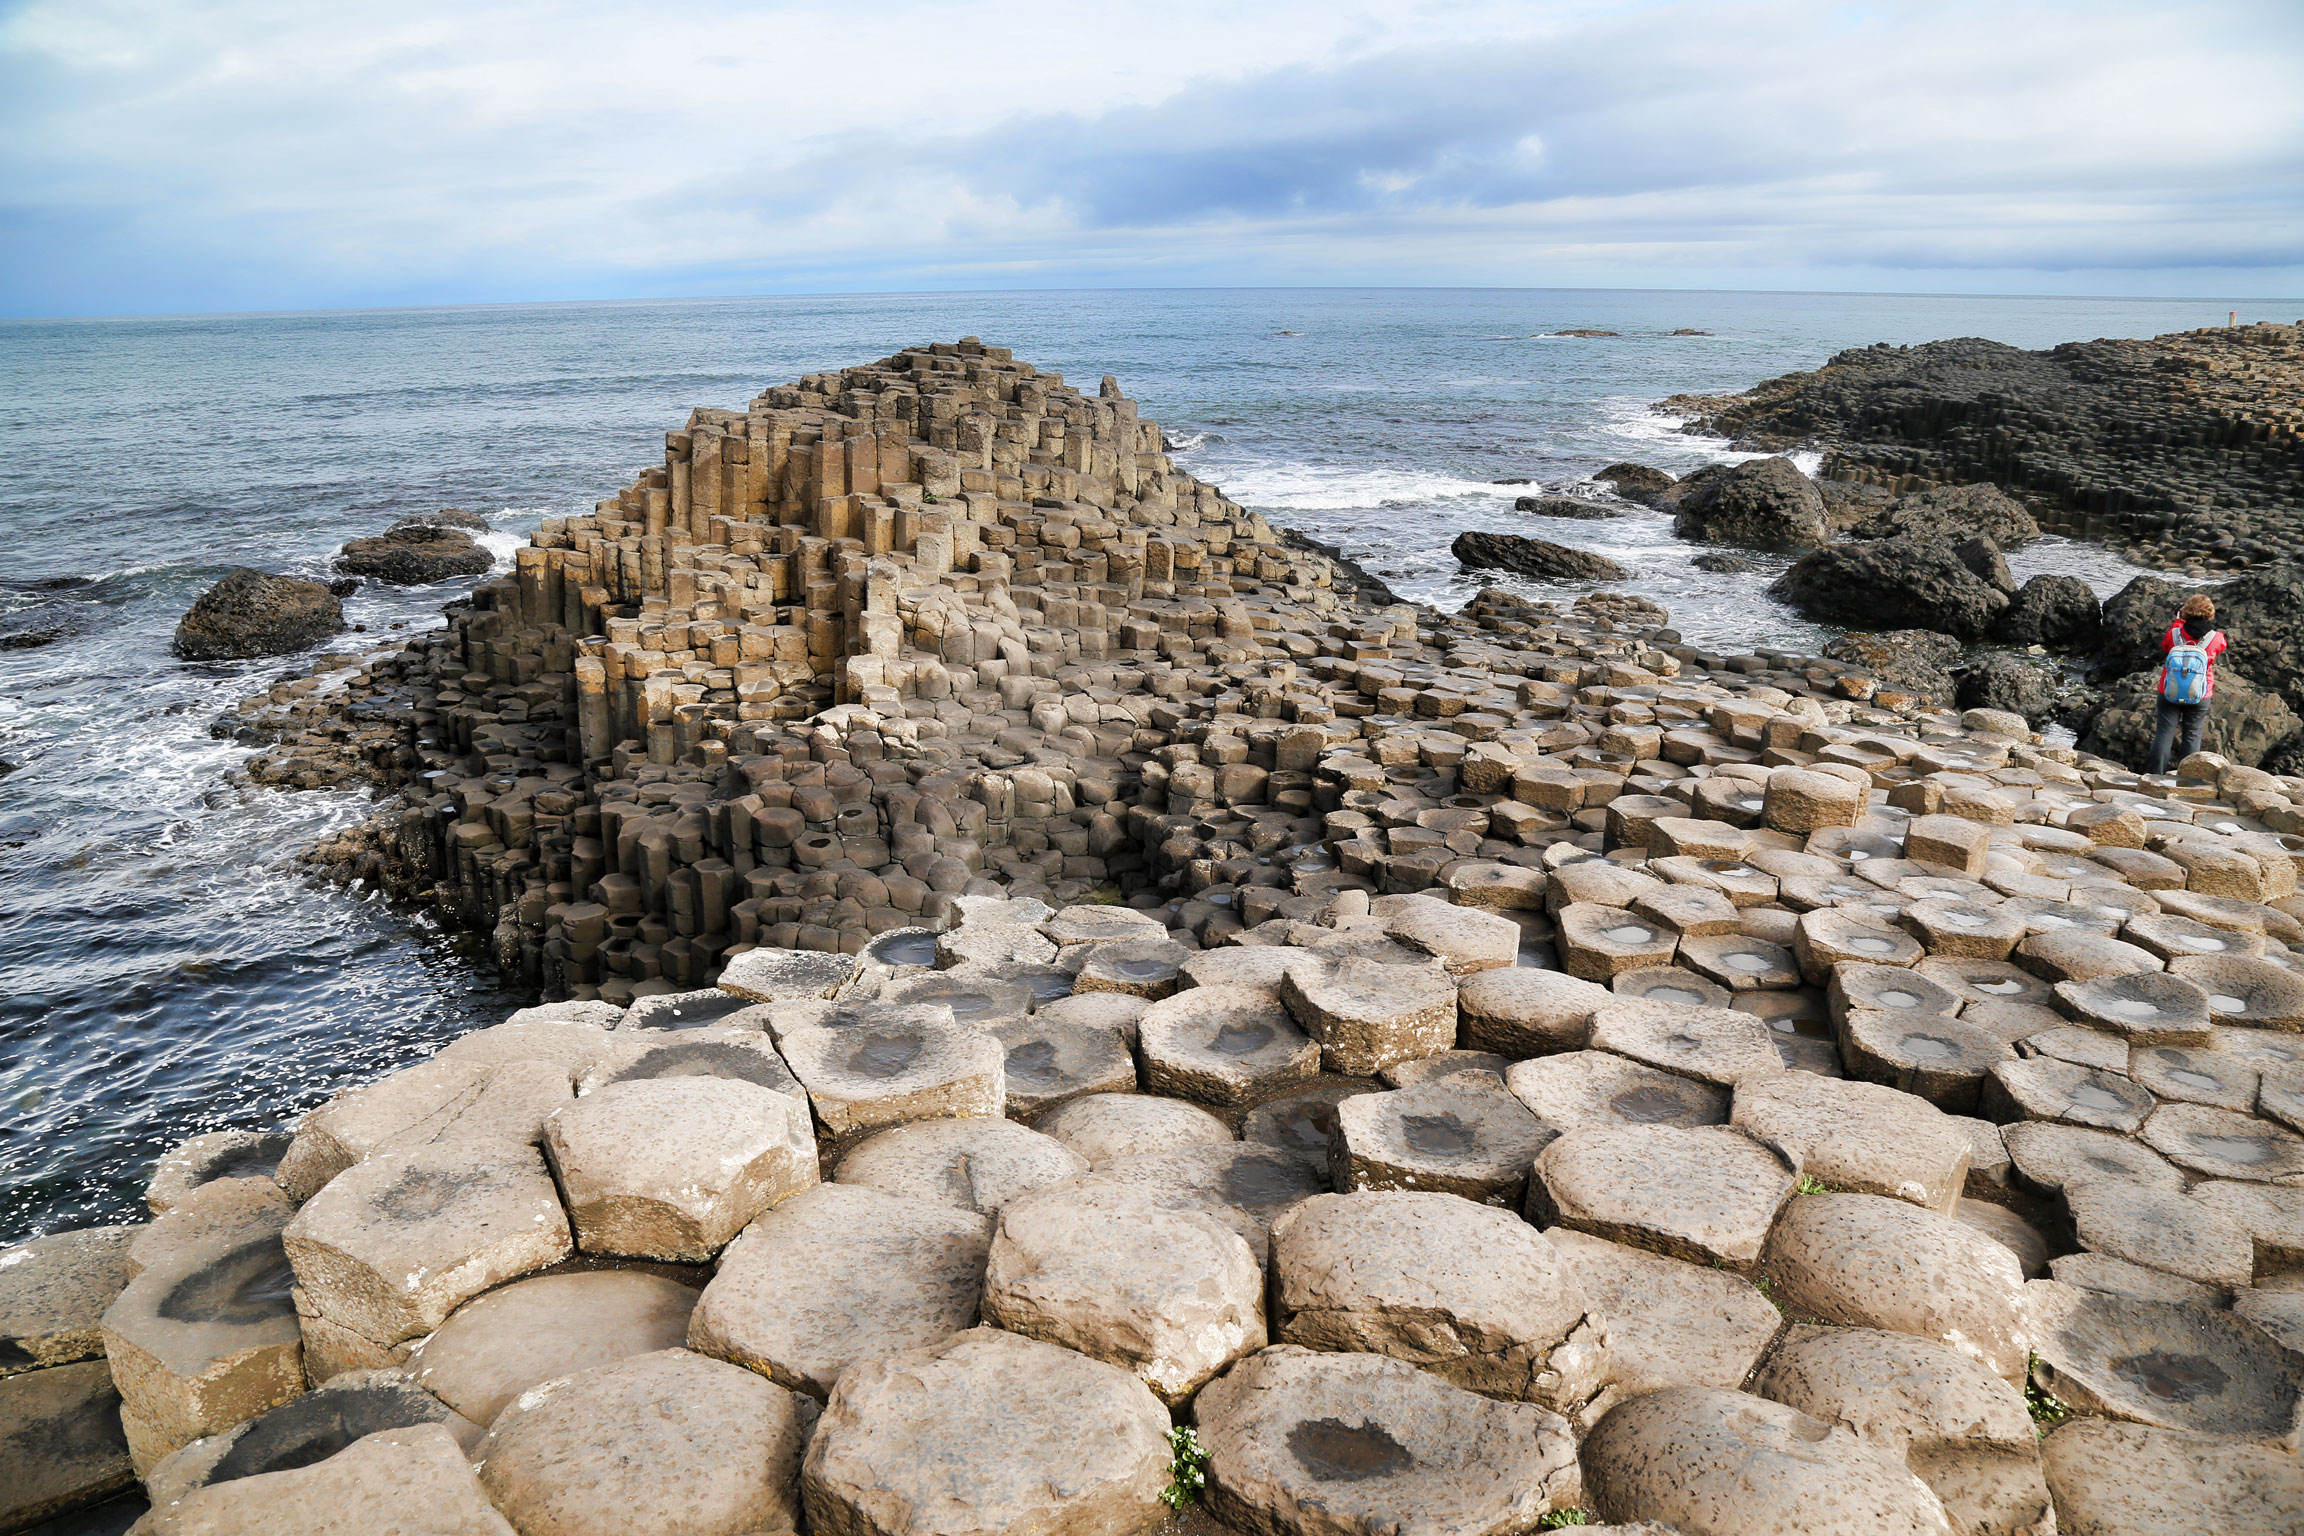 Columnar jointed basalt at Giant's Causeway, northern Ireland.